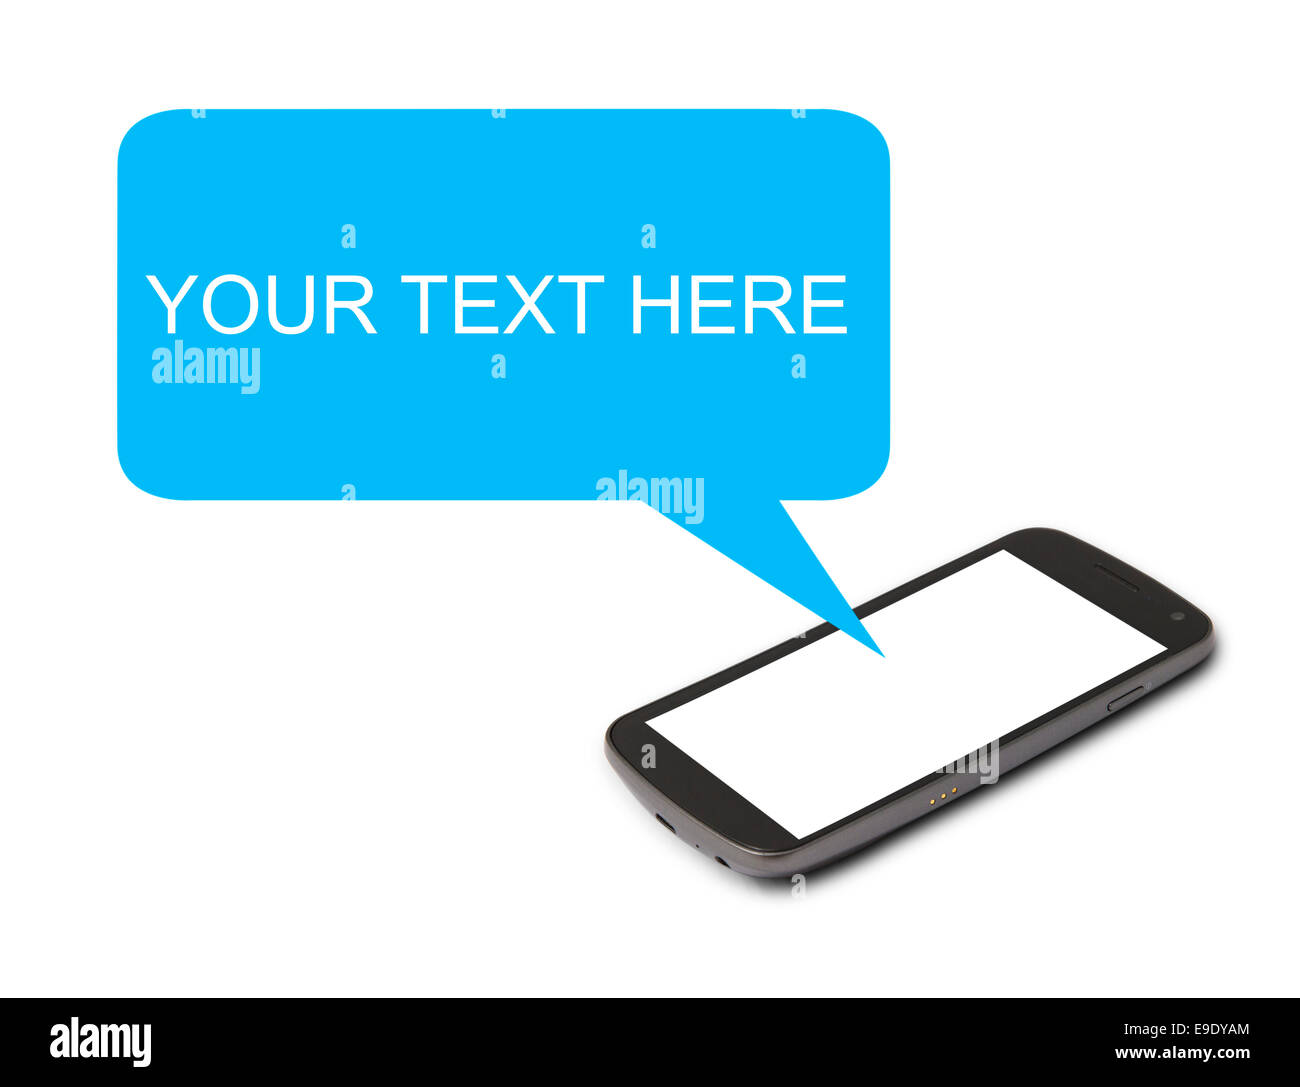 Mobile phone with speech bubble - Stock Image